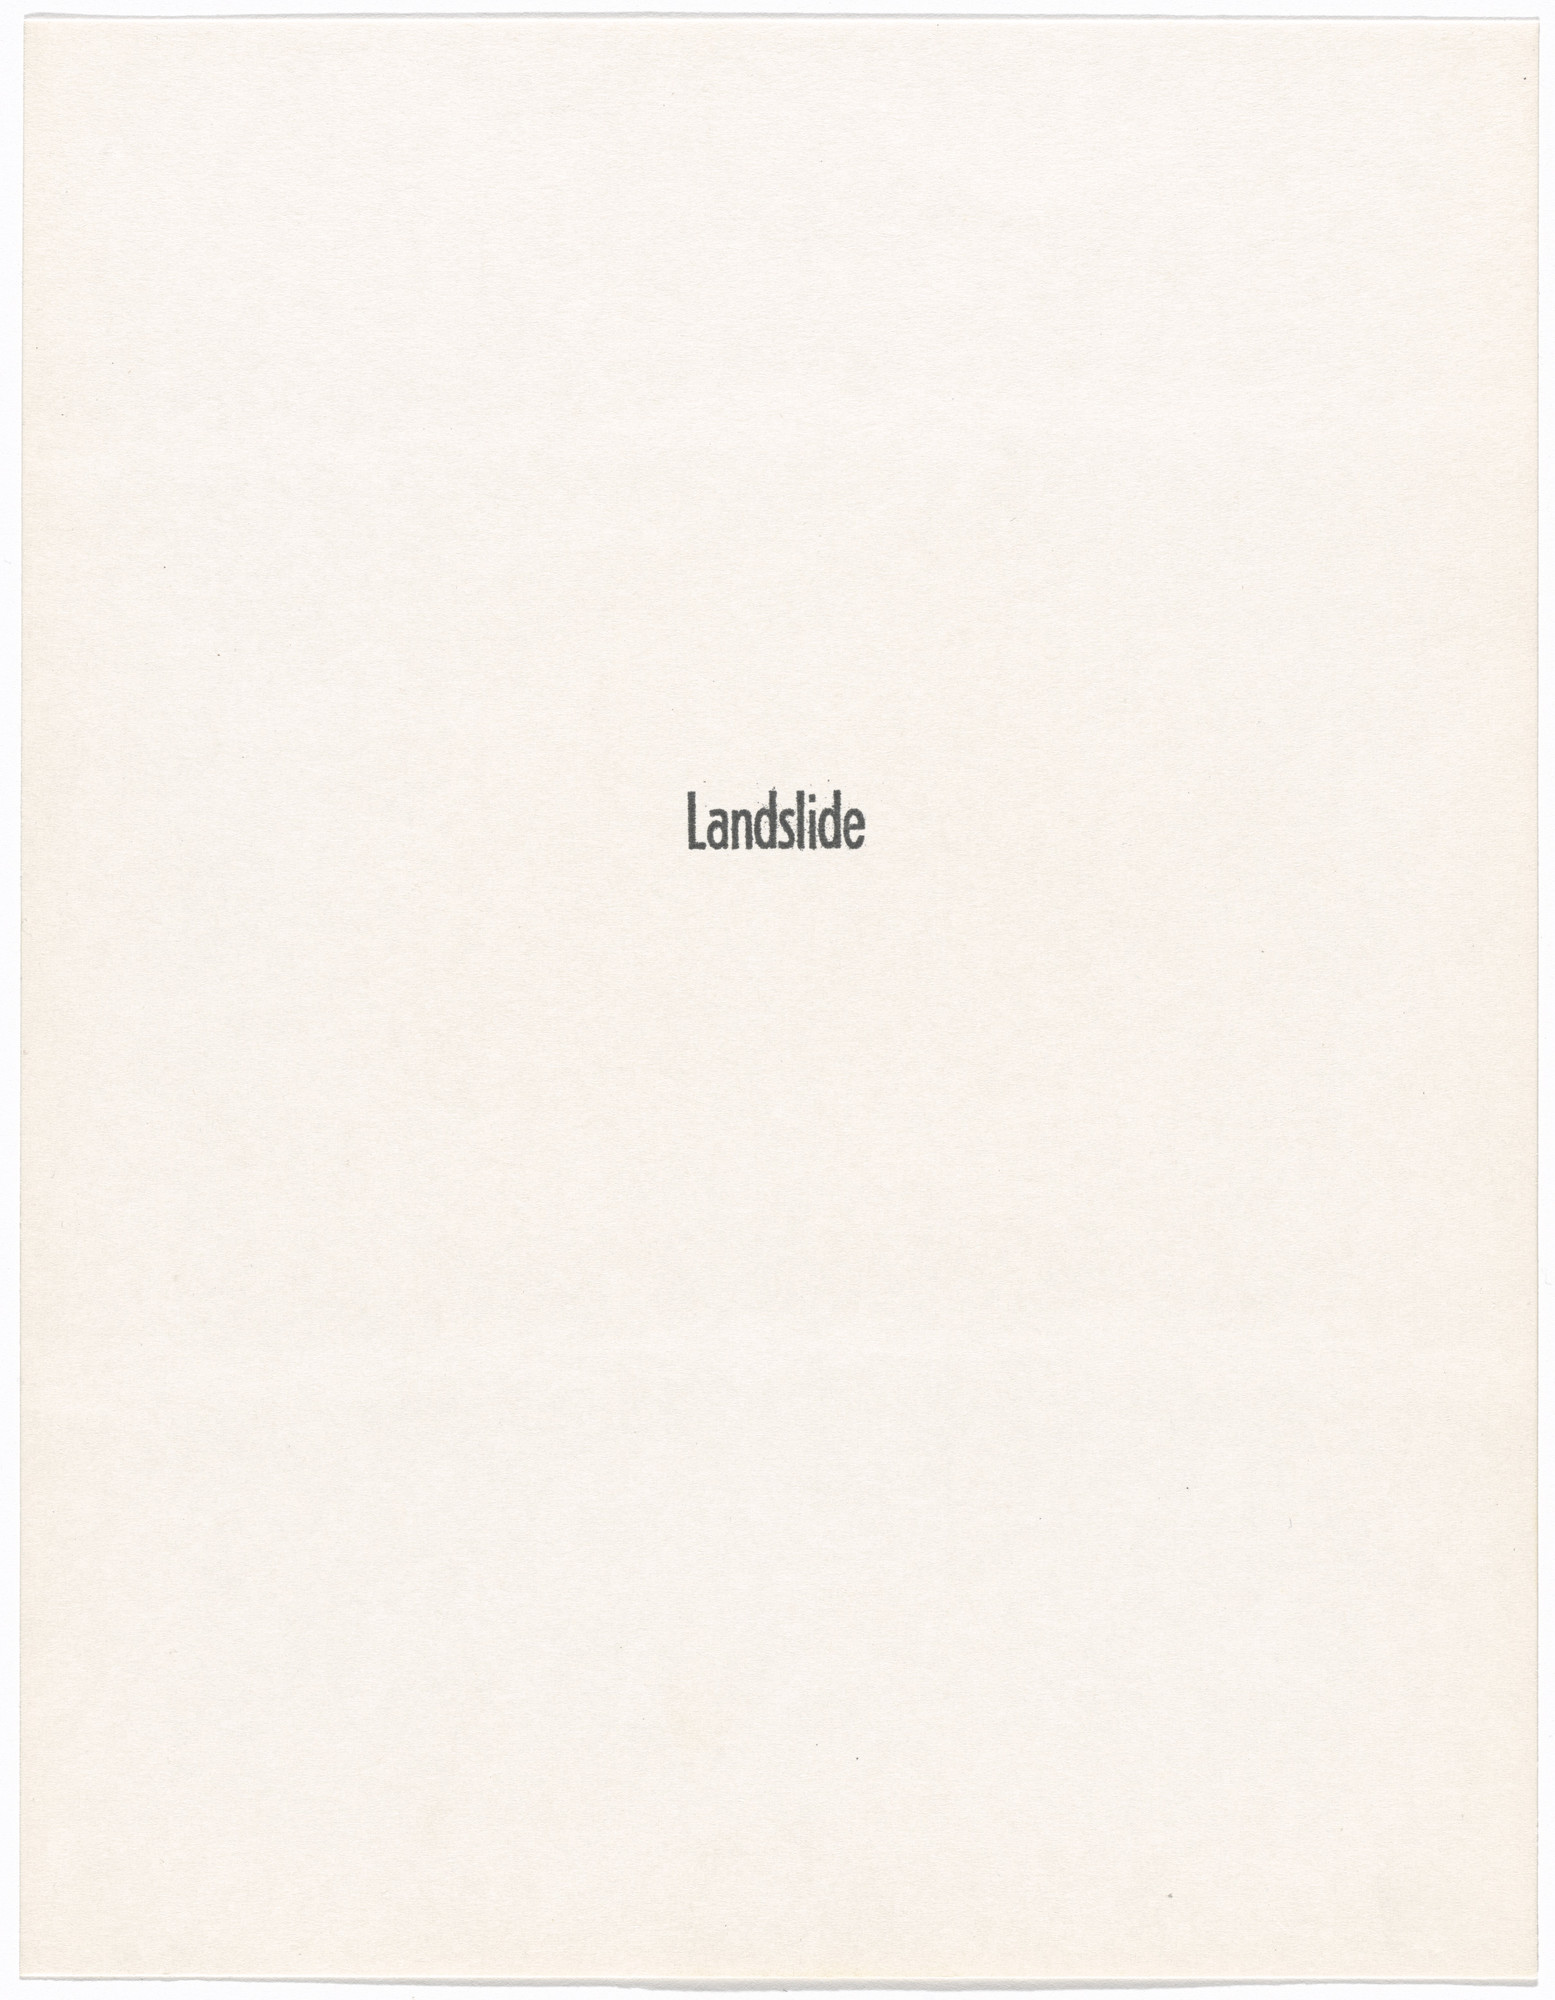 William Leavitt, Bas Jan Ader. Landslide, no. 1. 1969